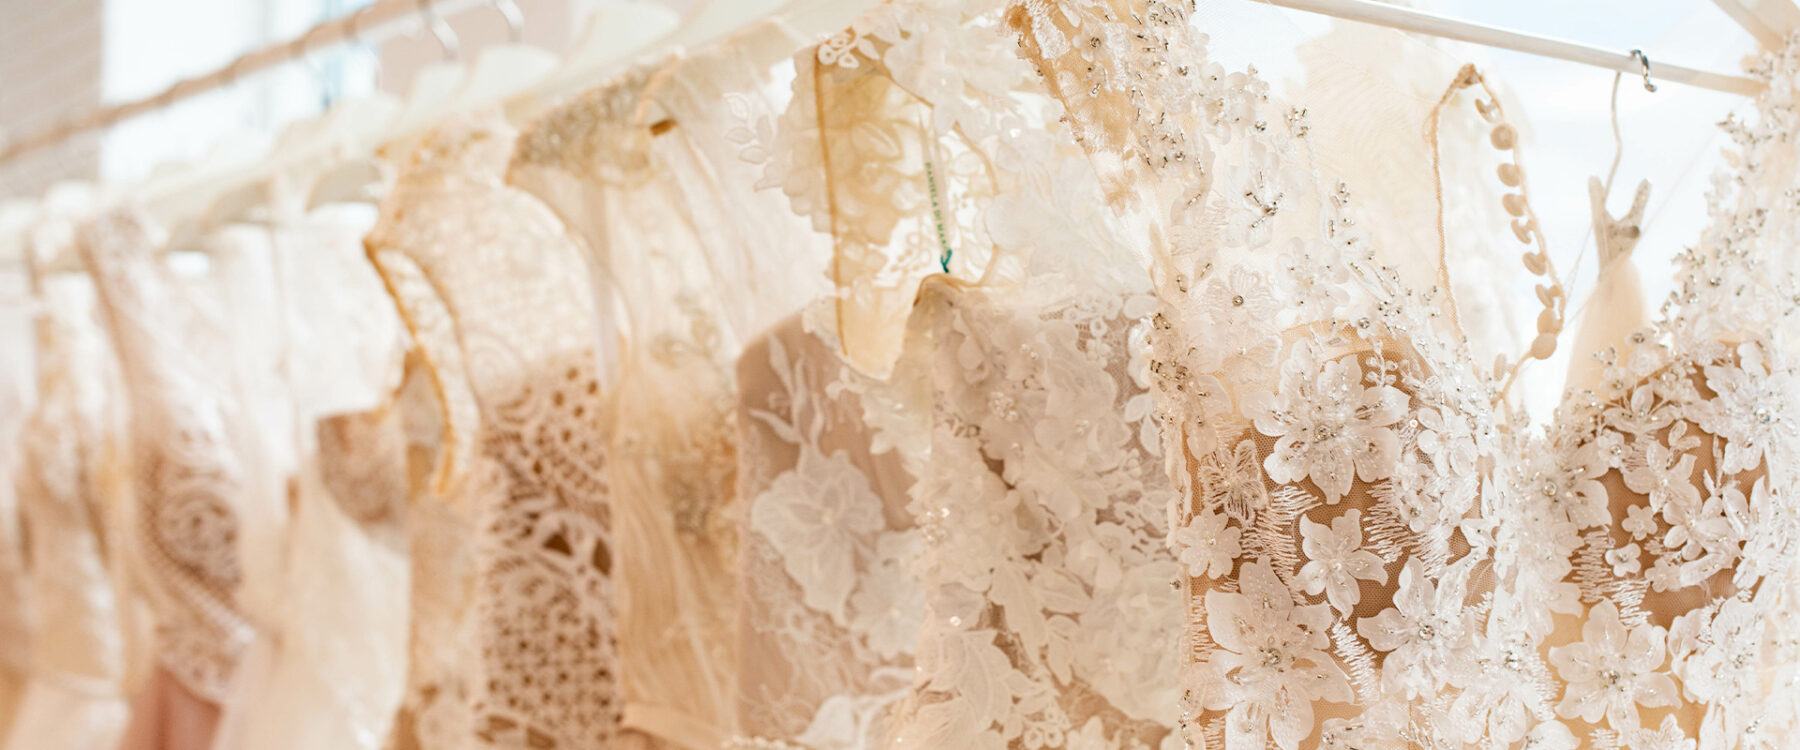 Nudes and Neutrals wedding dresses on a rack